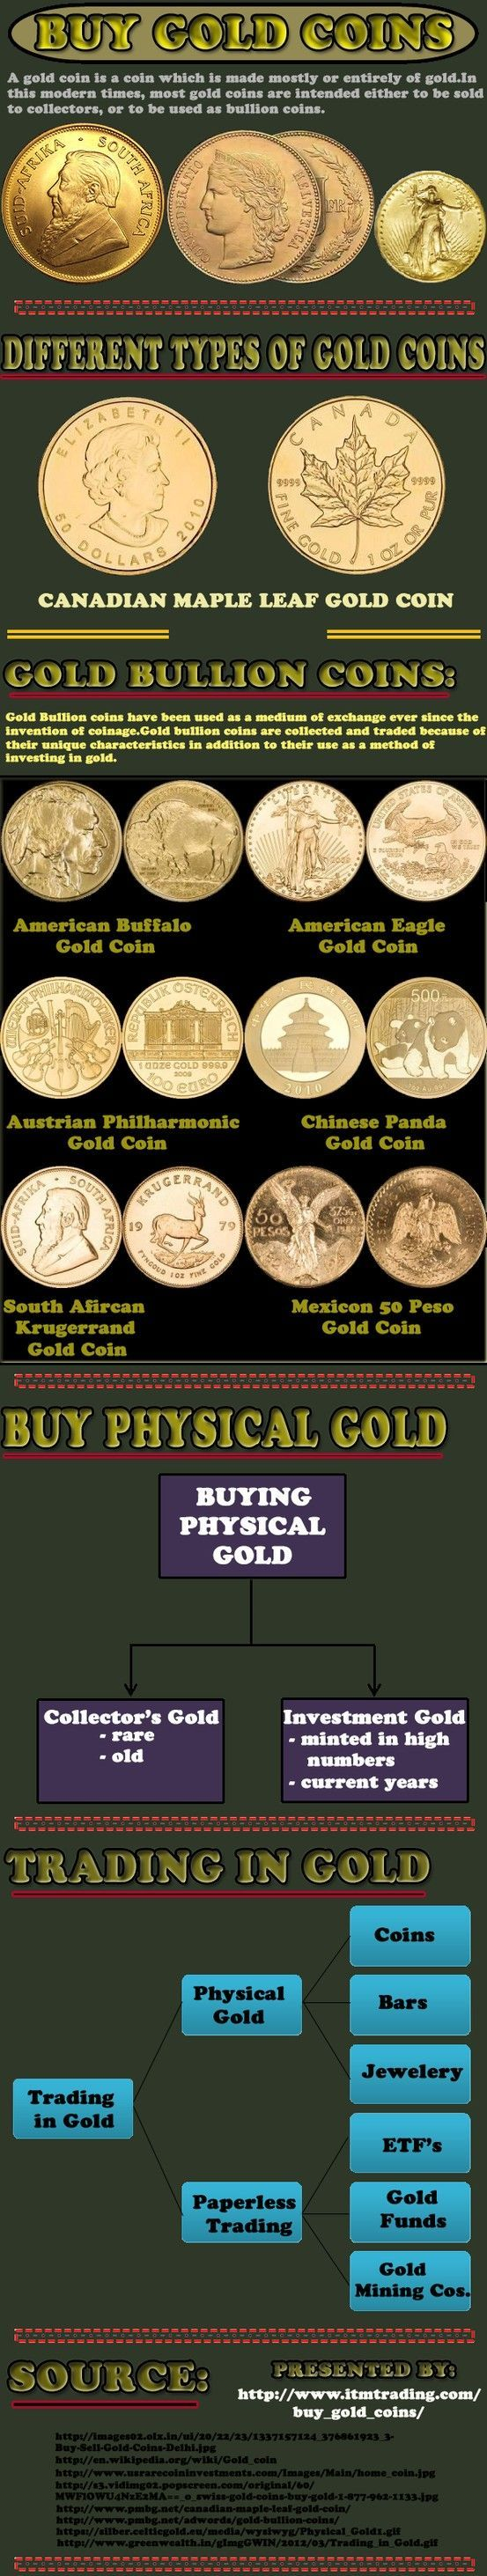 The presentation here enumerates about buying gold coins from ITM Trading Co. ITM Trading provides buying and selling opportunities for people looking to invest in the gold coin market. It provides gold coin buying opportunities in vrios gold coins such as American Eagle Gold Bullion Coin, American Buffalo Gold Bullion Coin, Canadian Gold Maple Leaf and many more. http://www.itmtrading.com/buy_gold_coins/